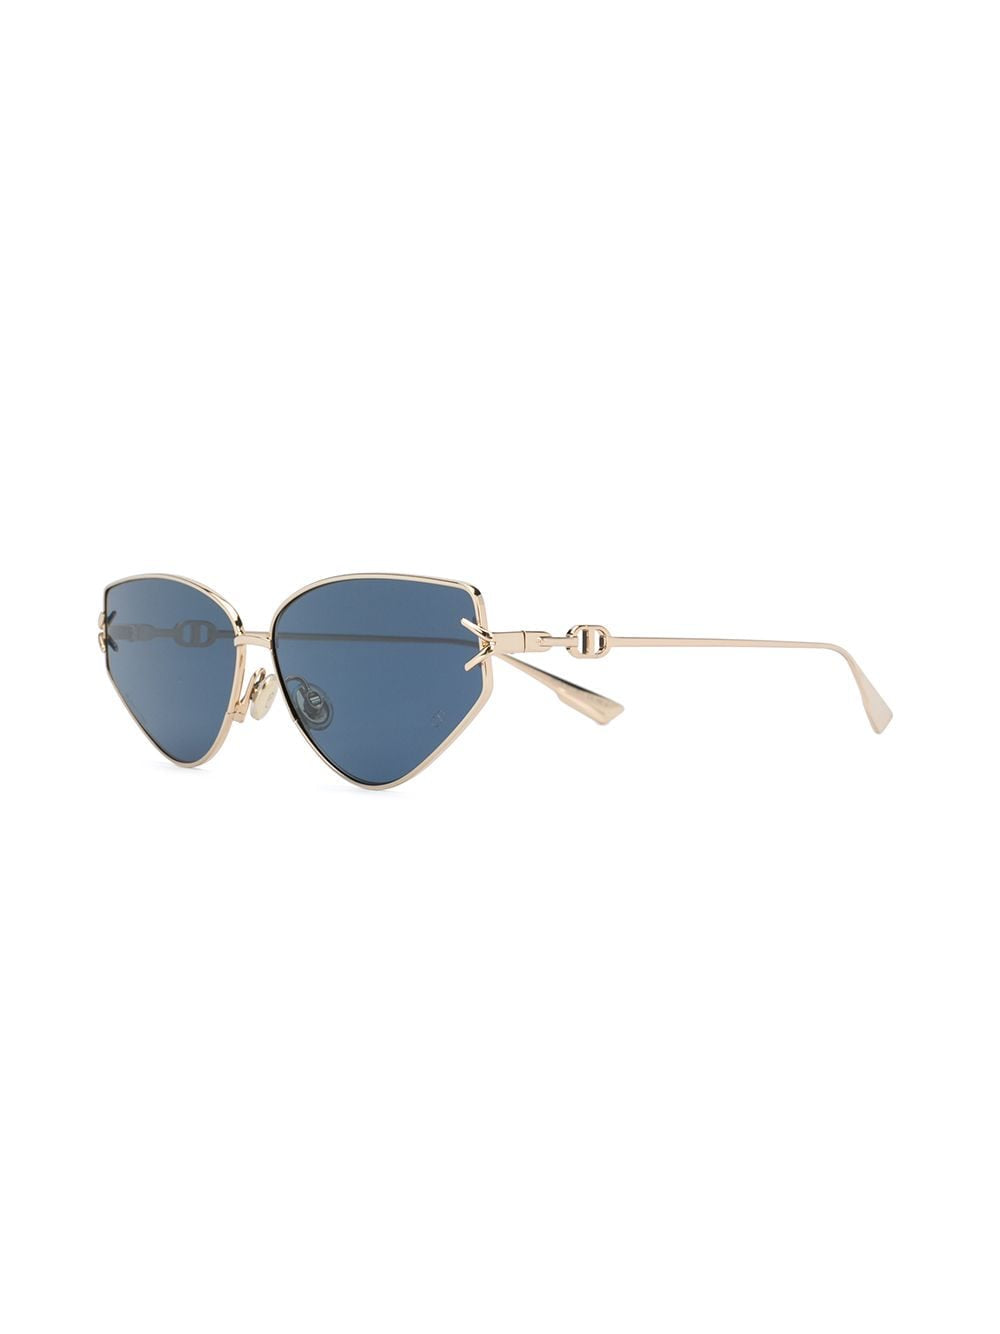 DIORGIPSY2 GOLD/LIGHT BLUE SUNGLASSES